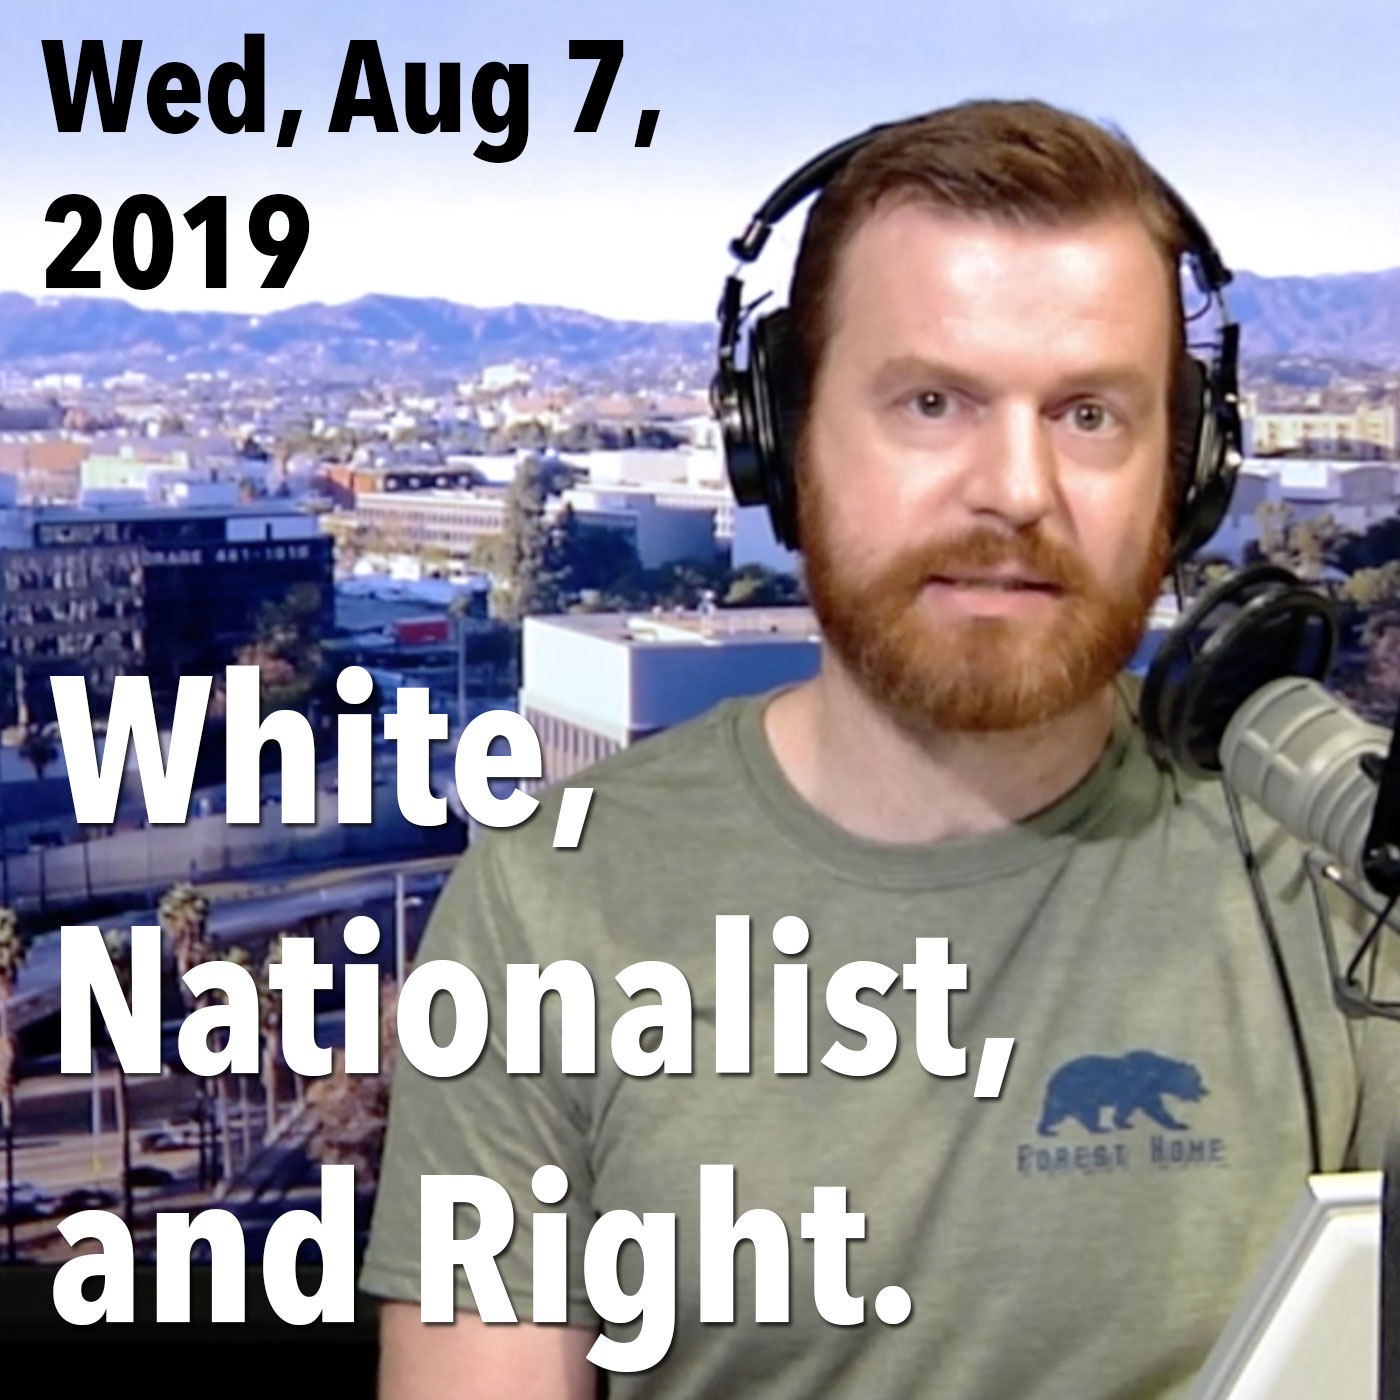 James's square thumbnail from the day's show, Wed, Aug 7, 2019: White, Nationalist, and Right.